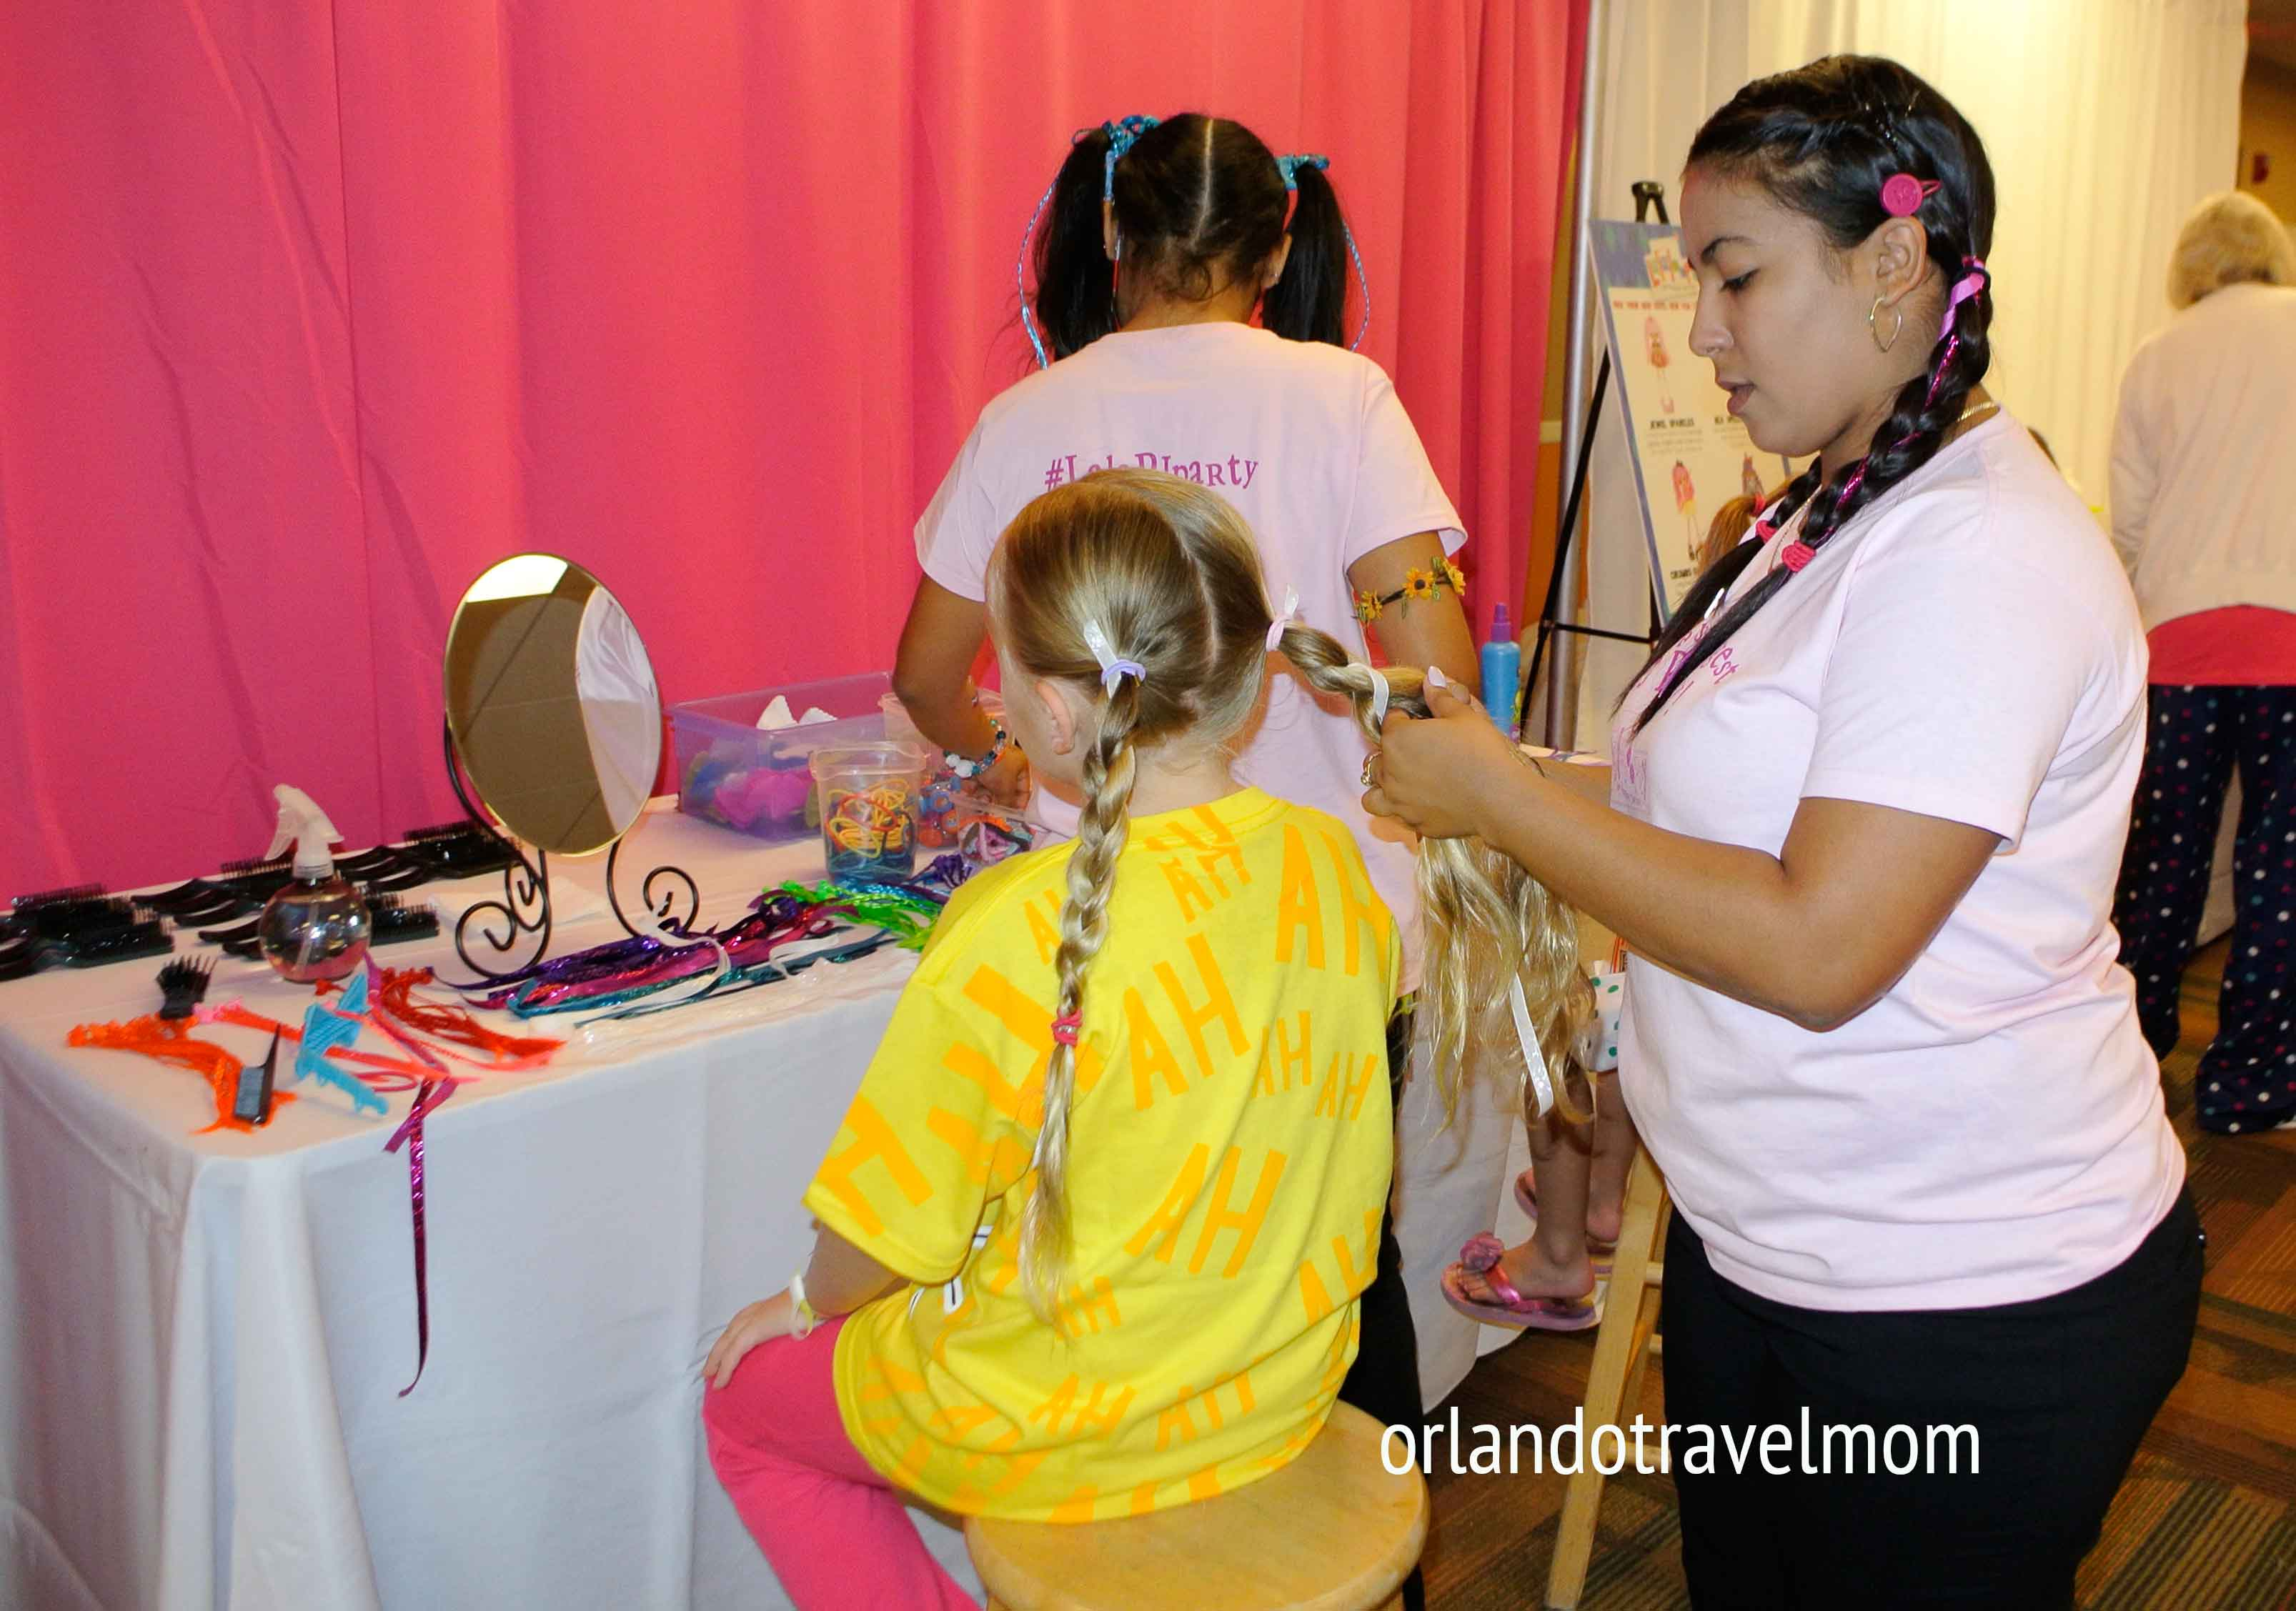 Lalapjparty At Nickelodeon Hotel Orlando Travel Mom